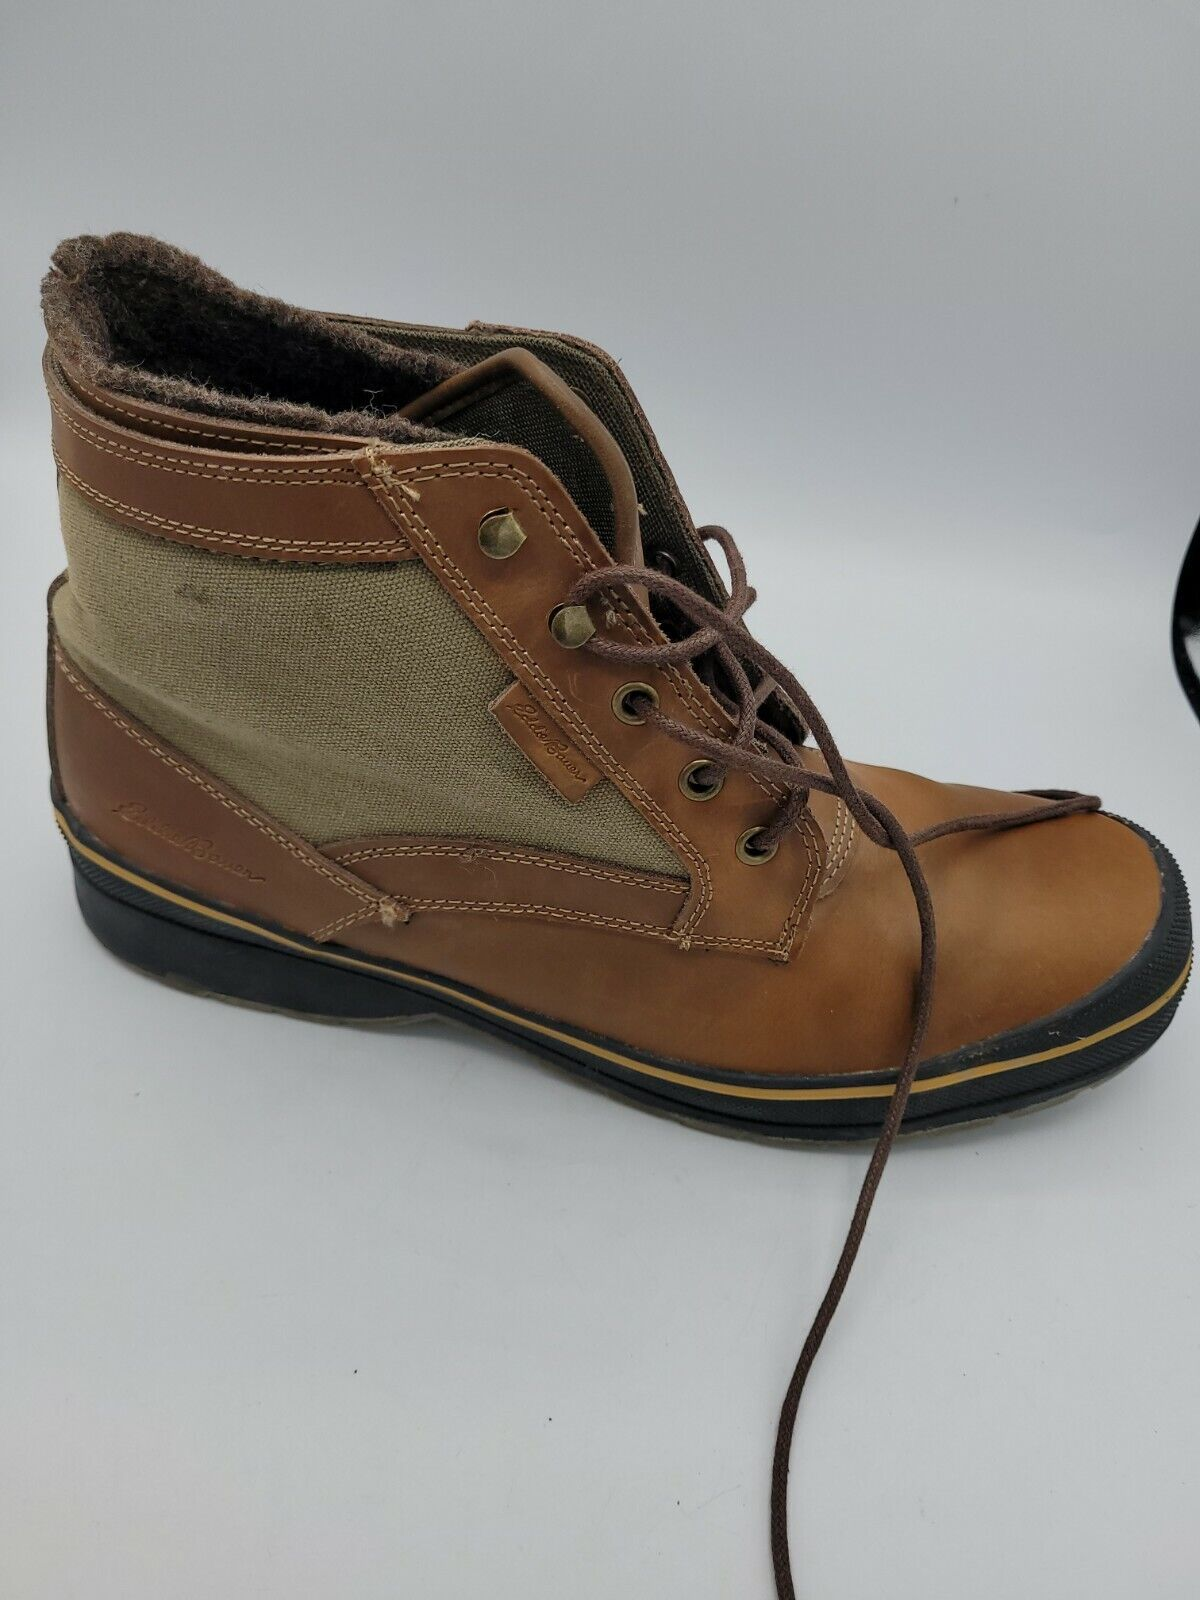 Eddie Bauer Trinity Brown Leather Canvas Lined Ankle Boots Mens 12M M10005